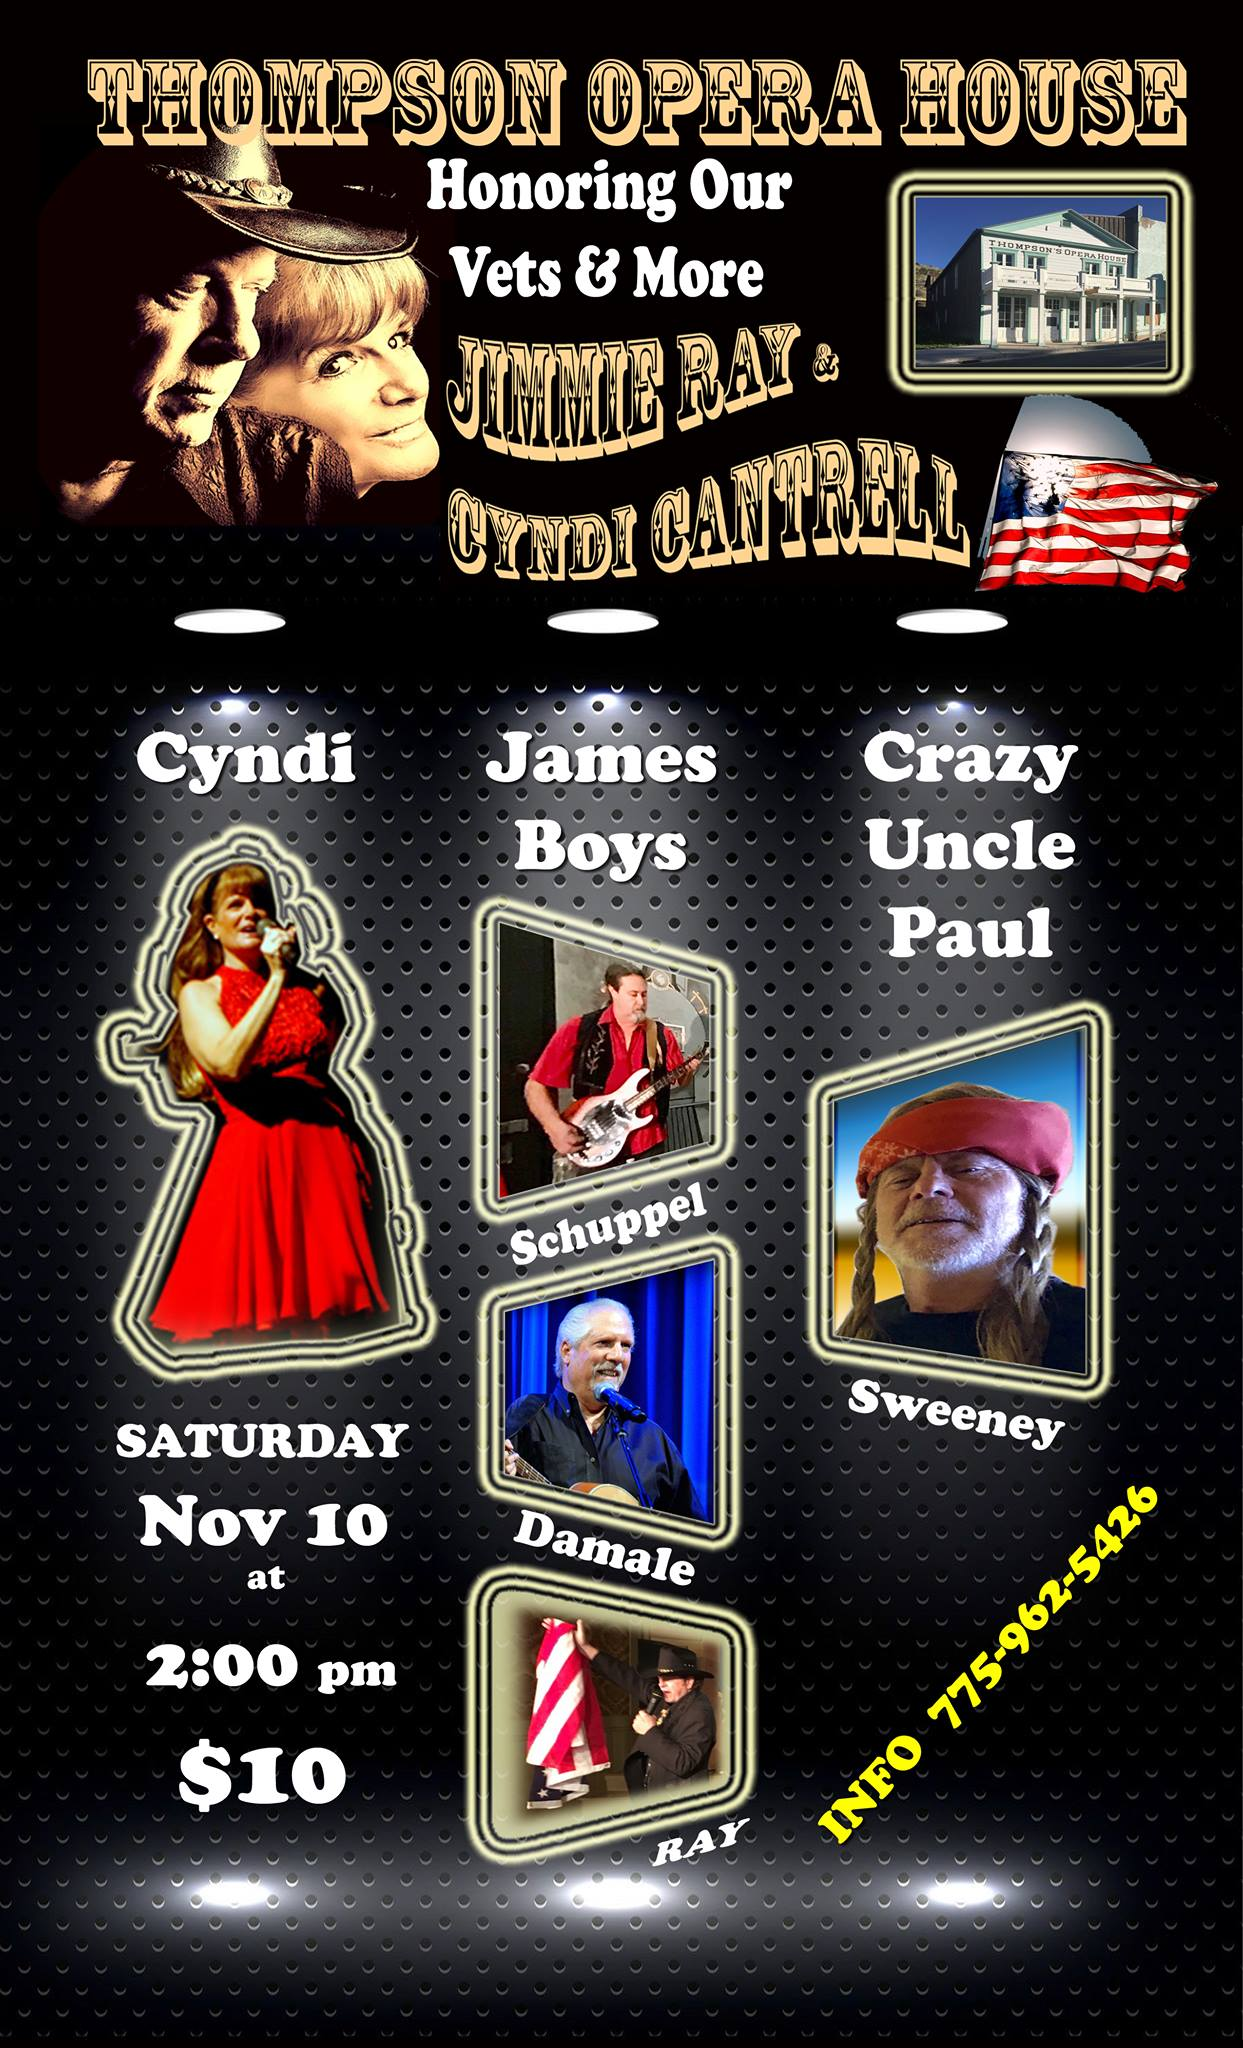 Thompson's Opera House - Honoring Our Vets & More, Jimmie Ray & Cyndi Cantrell, Saturday, November 10 at 2 p.m. - $10 - Info (775) 962-5426